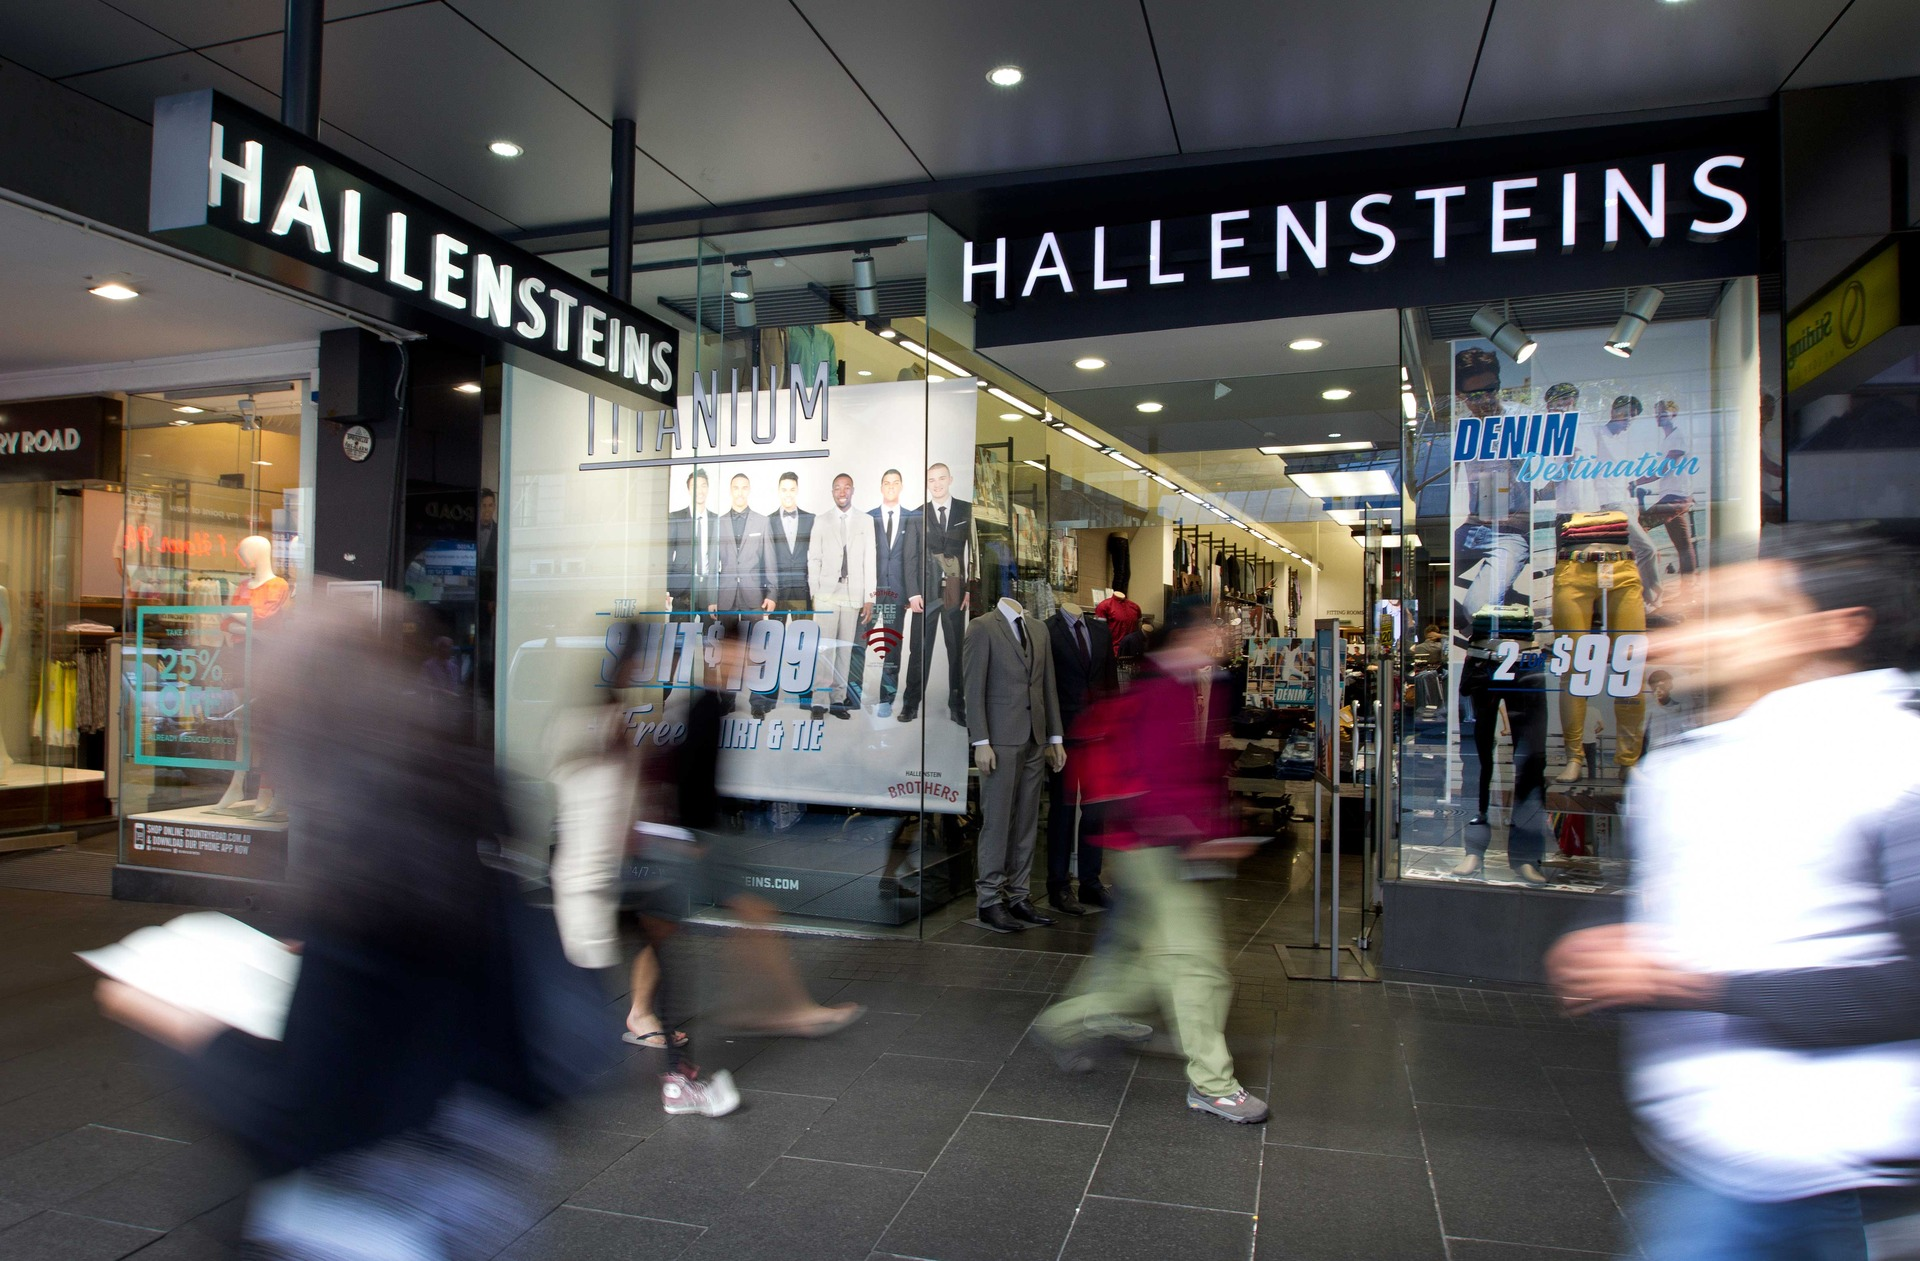 Hallenstein's board too long in the tooth, says NZSA